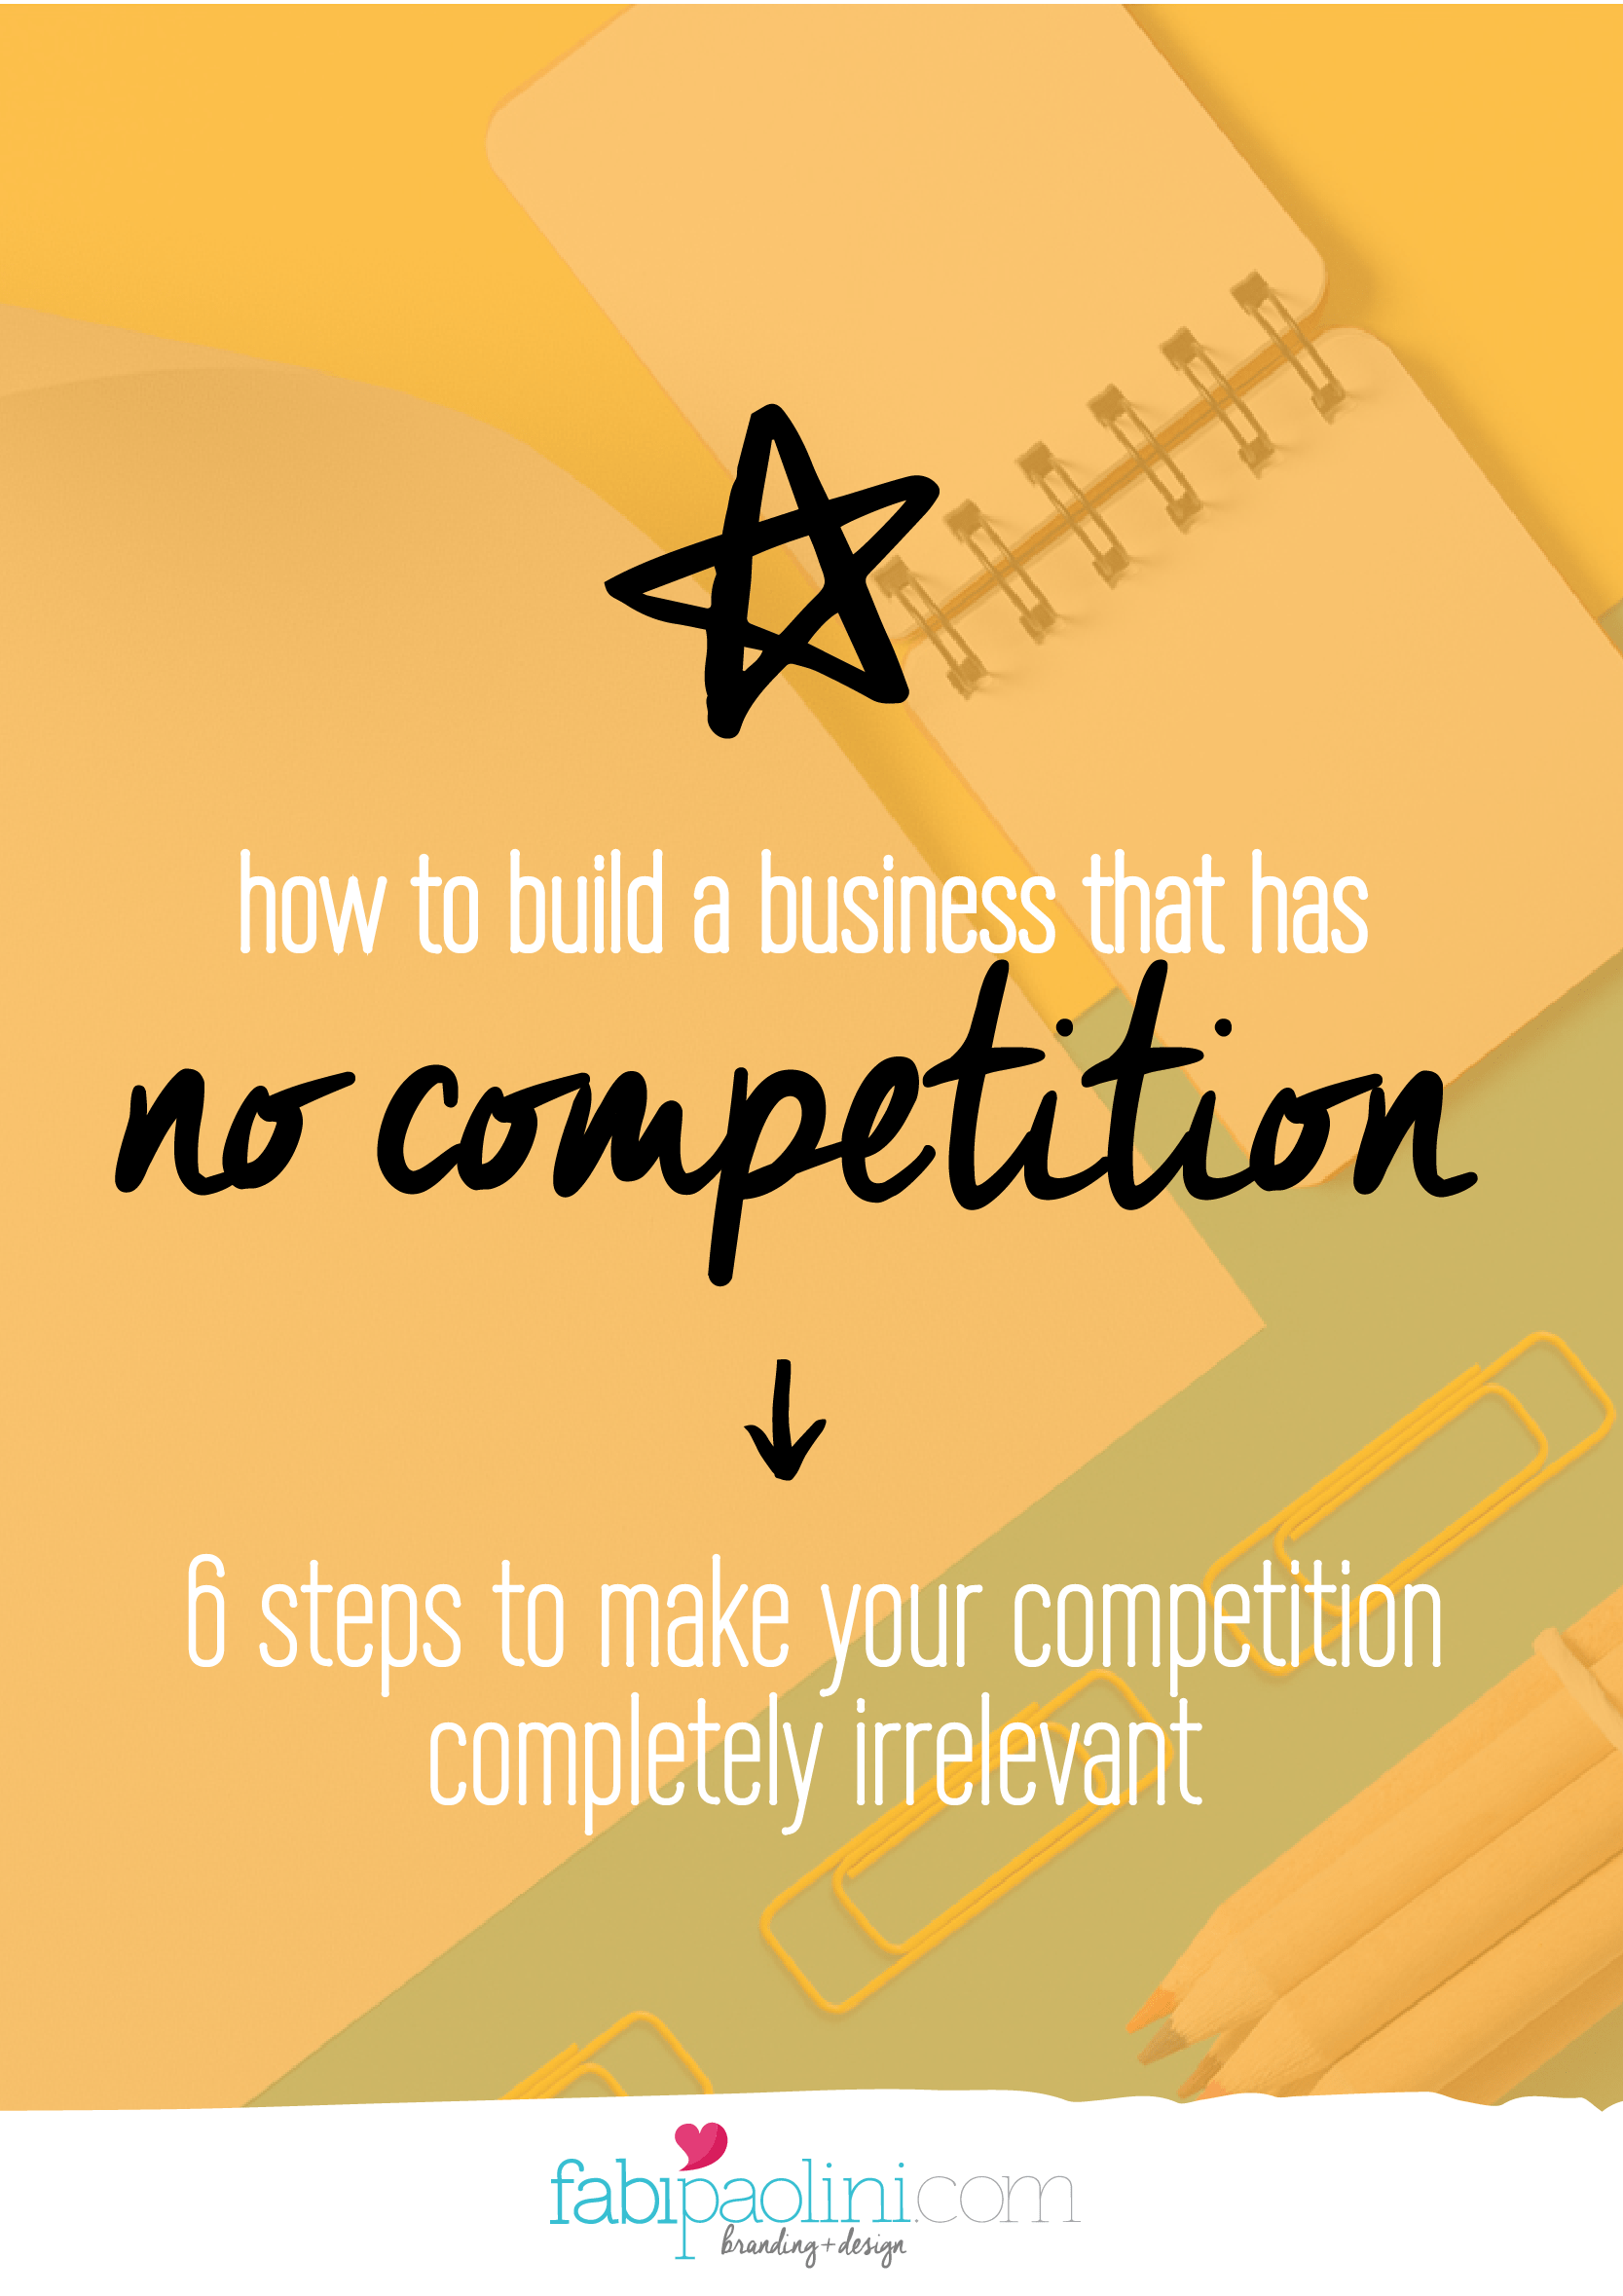 How to build a business that has no competition. Isn't that what we all want? This is how you do it (free guide inside!)